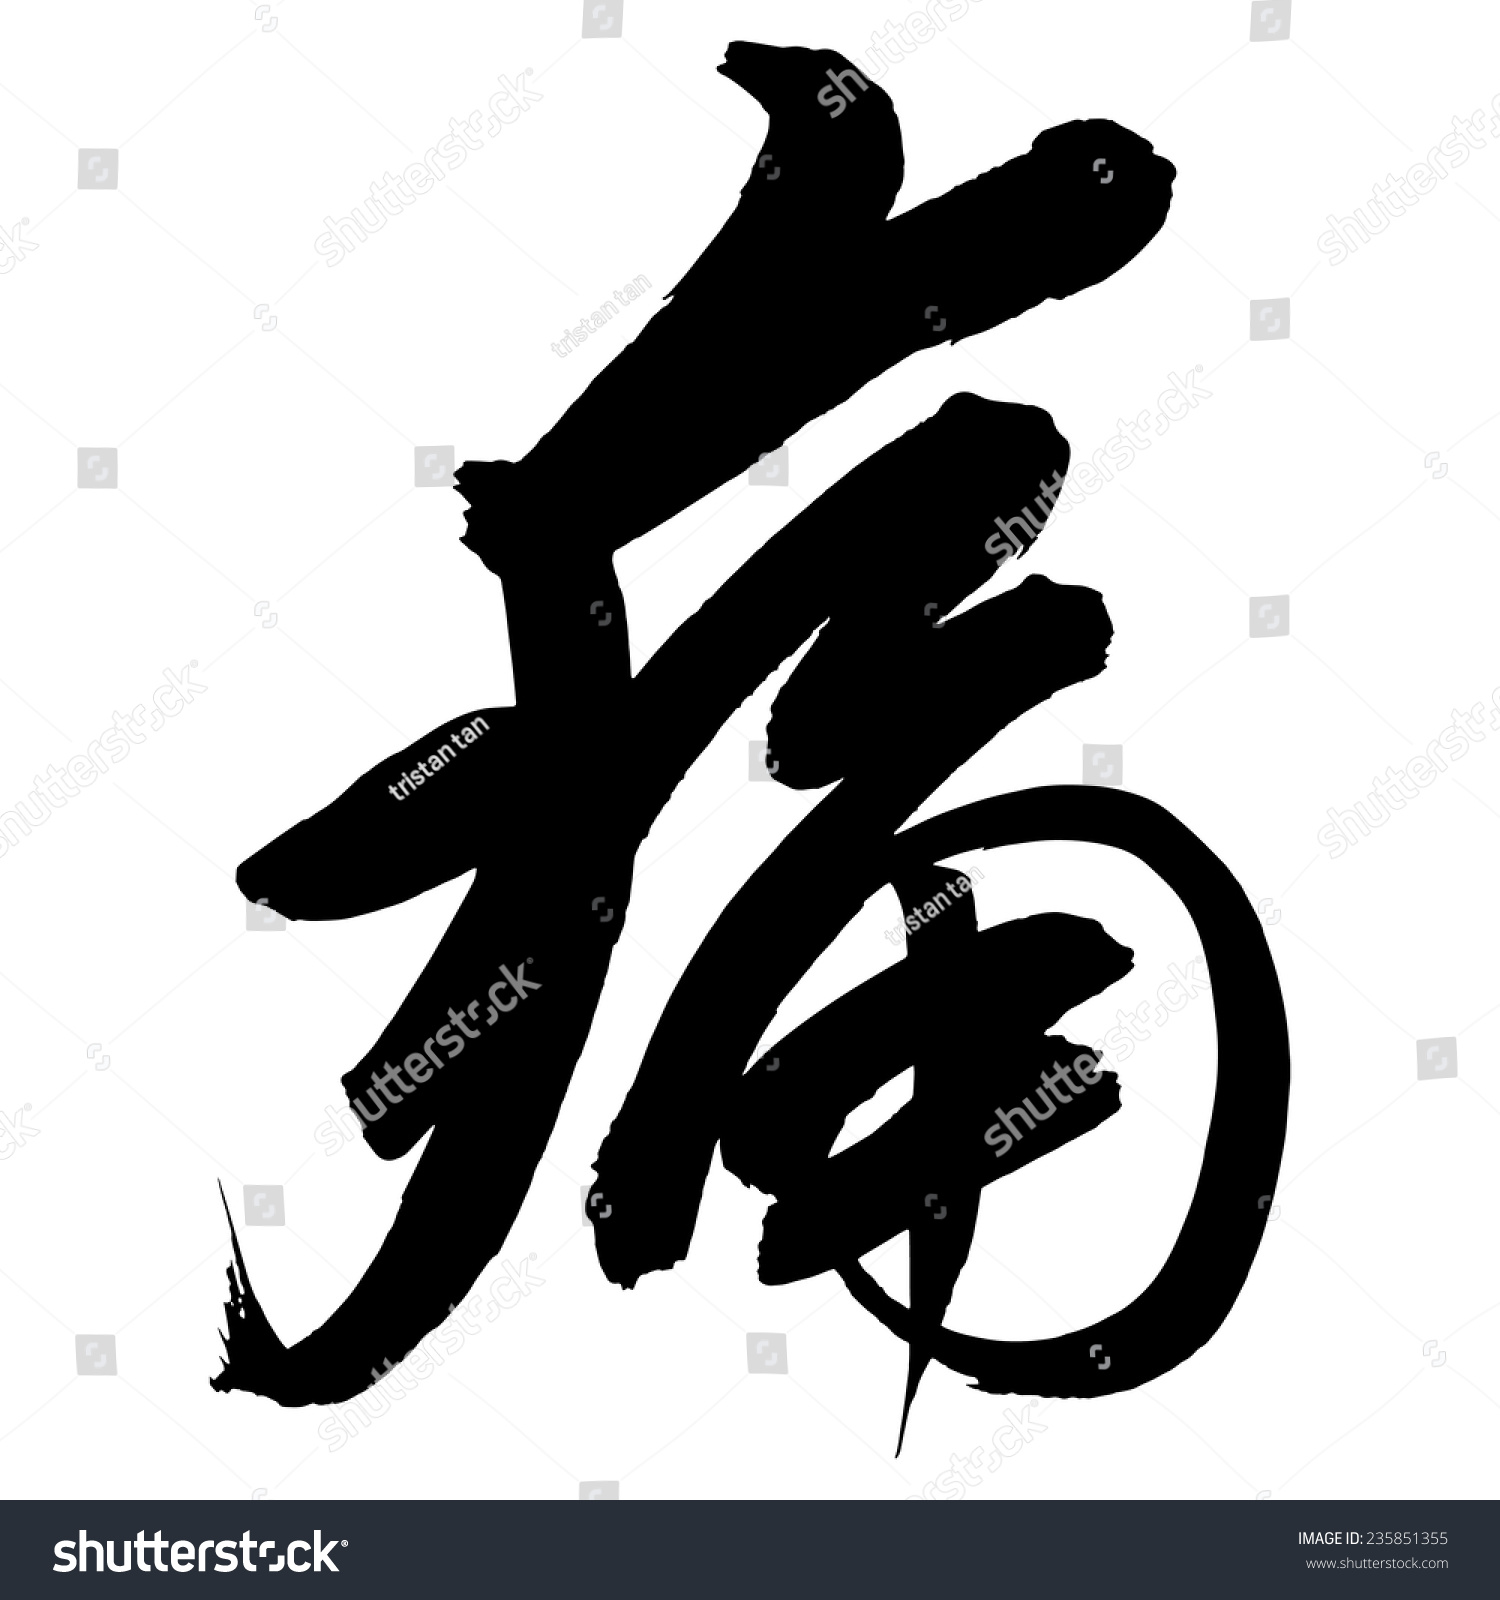 Chinese Calligraphy Tong Translation Ache Pain Stock